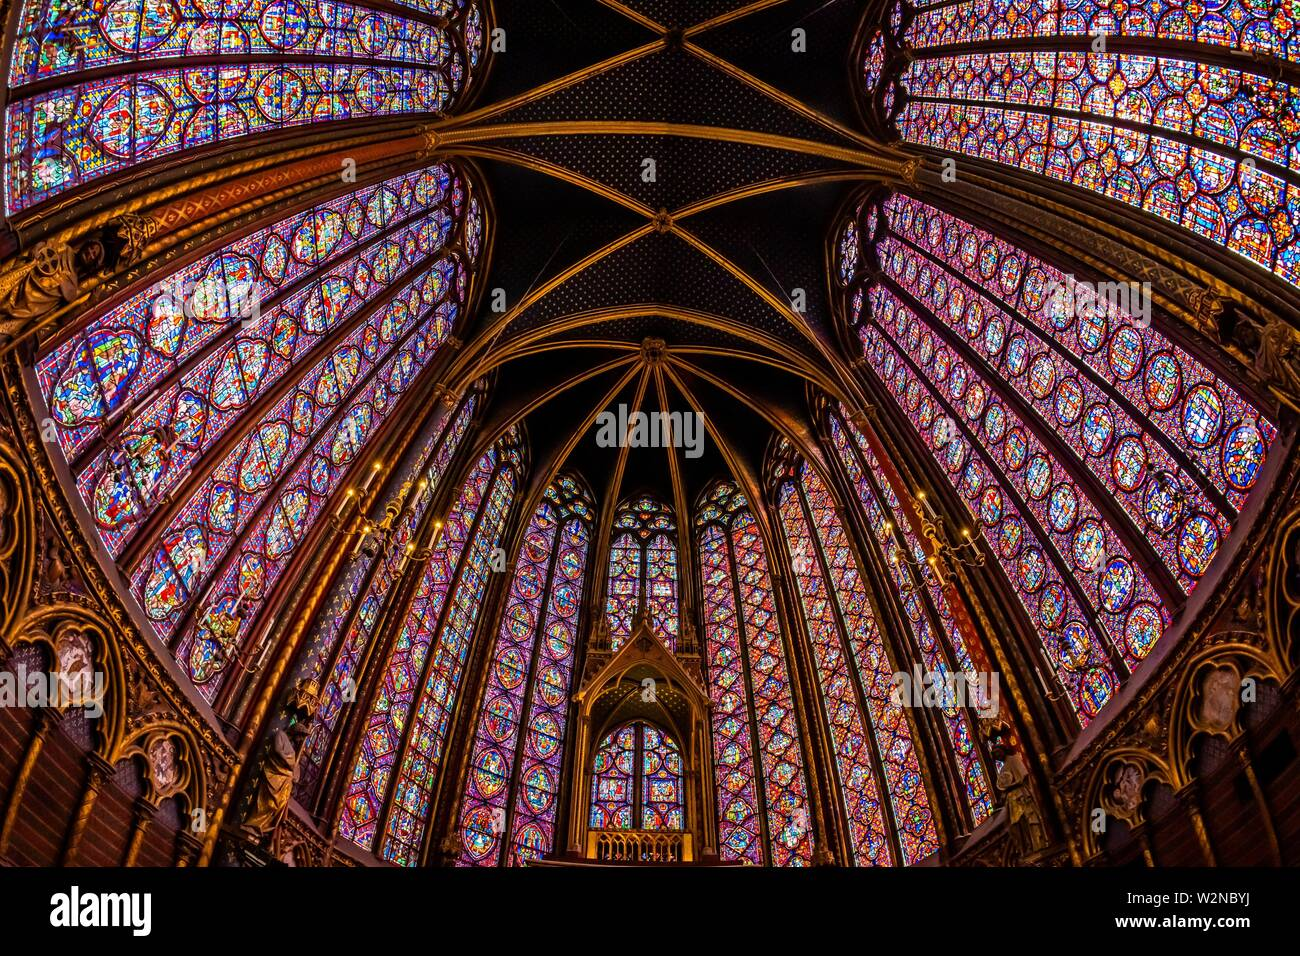 The Sainte-Chapelle is a royal chapel in the Gothic style, within the medieval Palais de la Cité, the residence of the Kings of France until the 14th - Stock Image